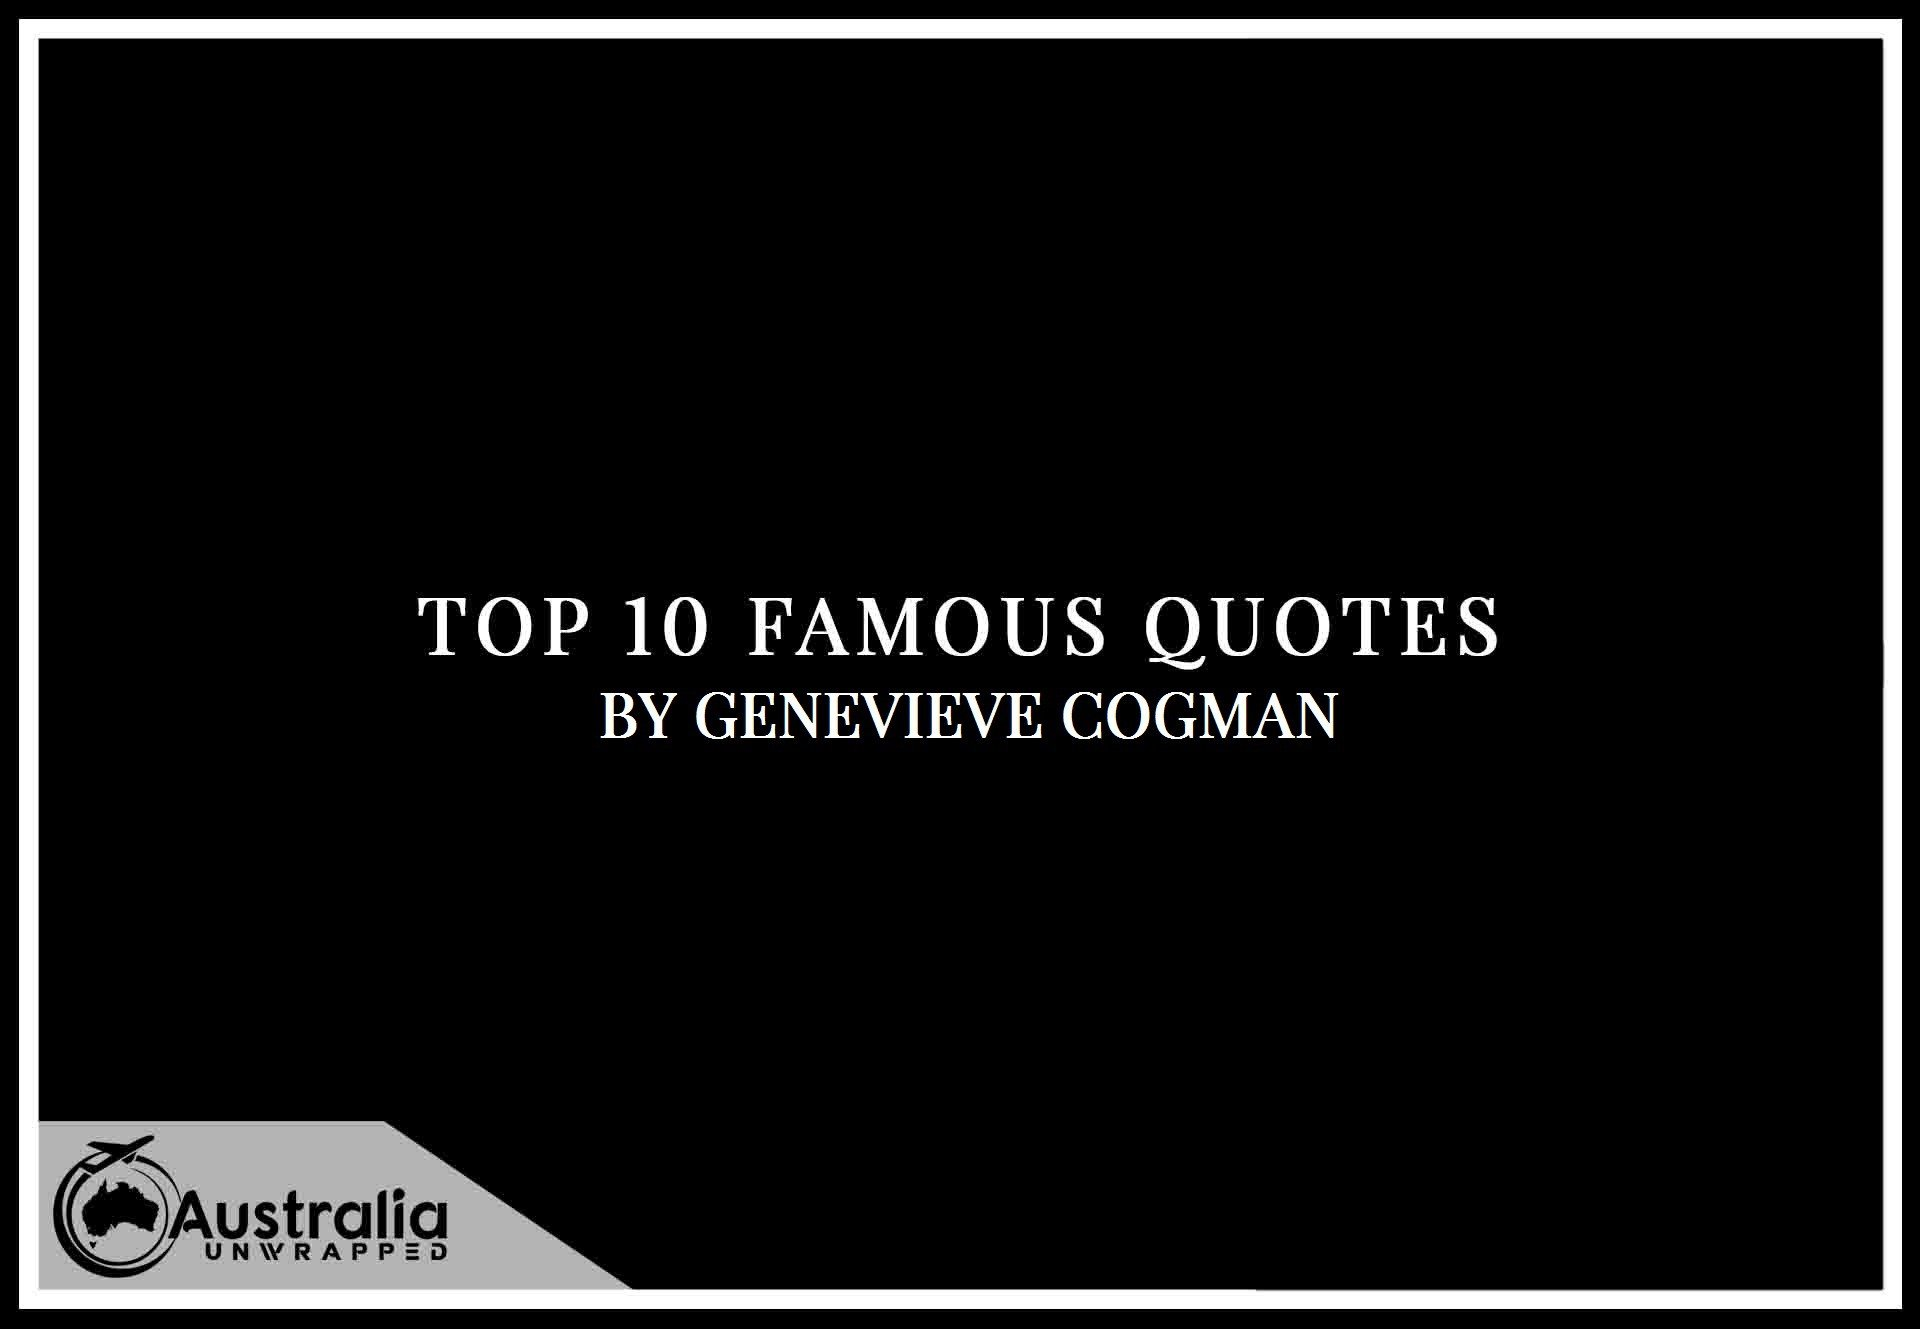 Genevieve Cogman's Top 10 Popular and Famous Quotes